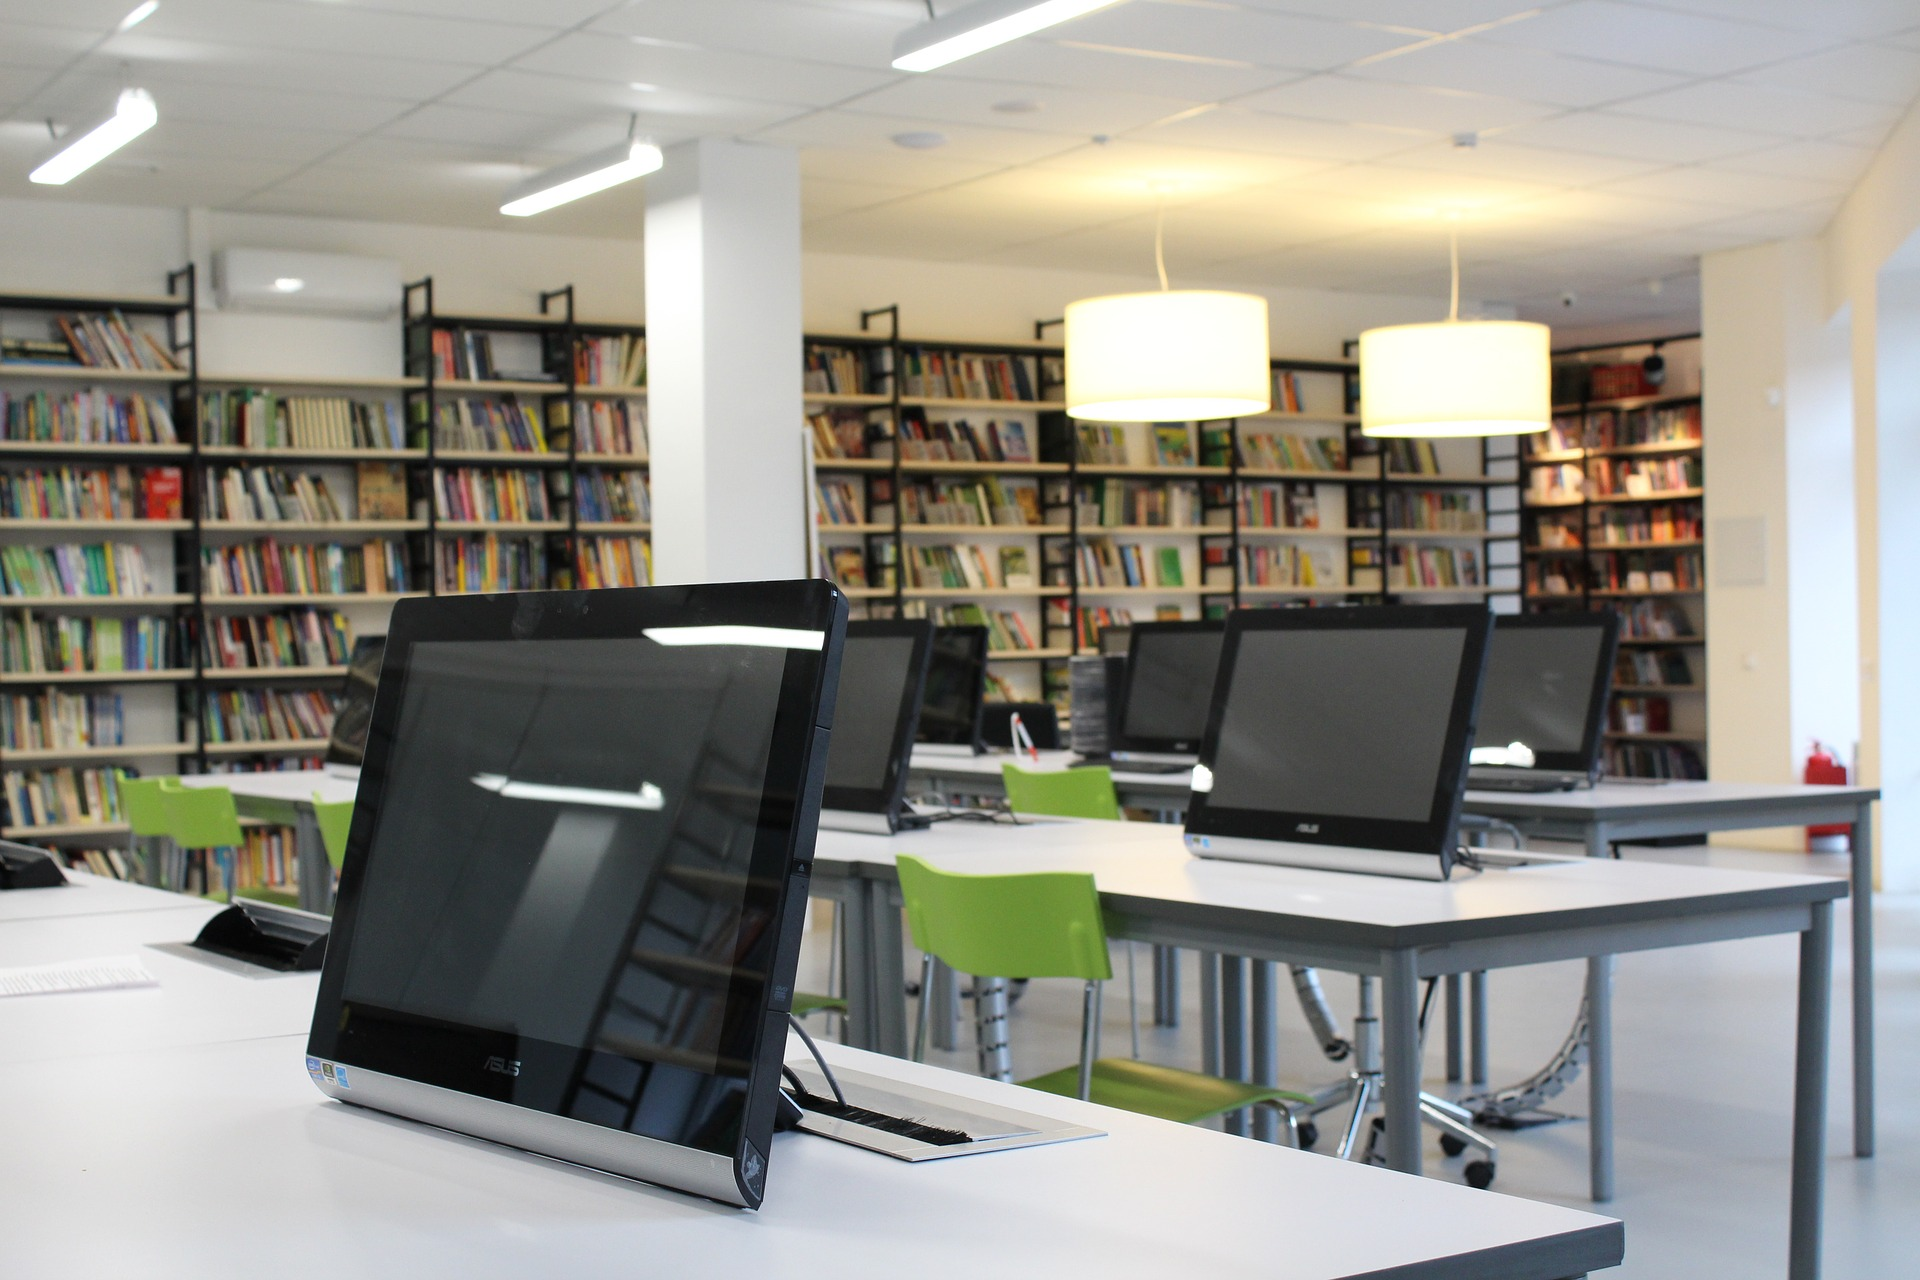 Image for Purchase of computers for the Dieppe Public Library